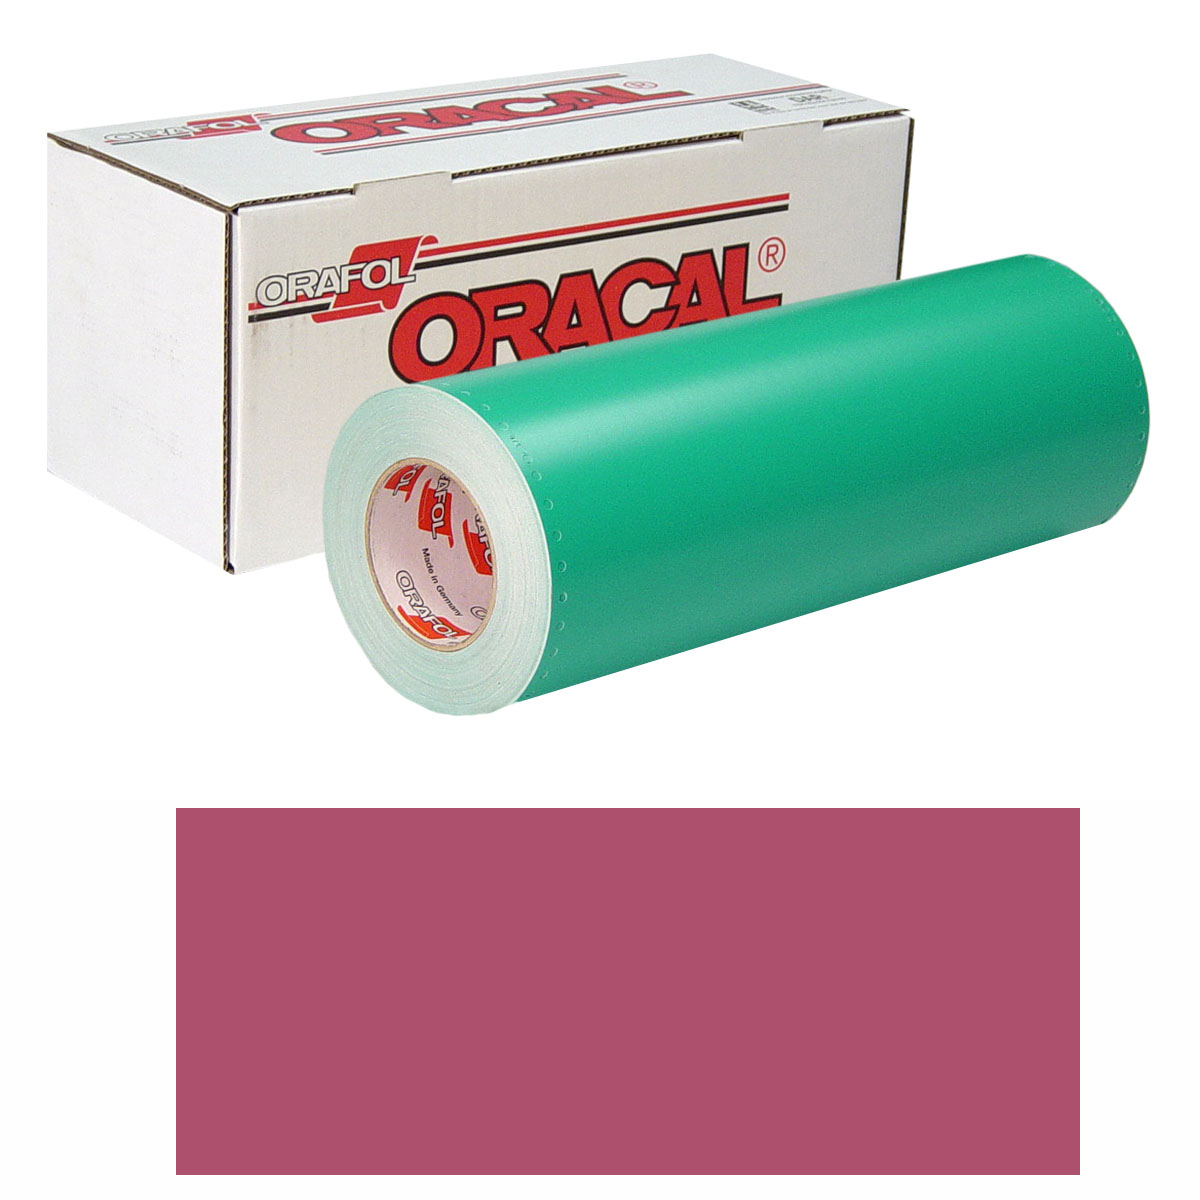 ORACAL 8500 30In X 10Yd 030 Dark Red